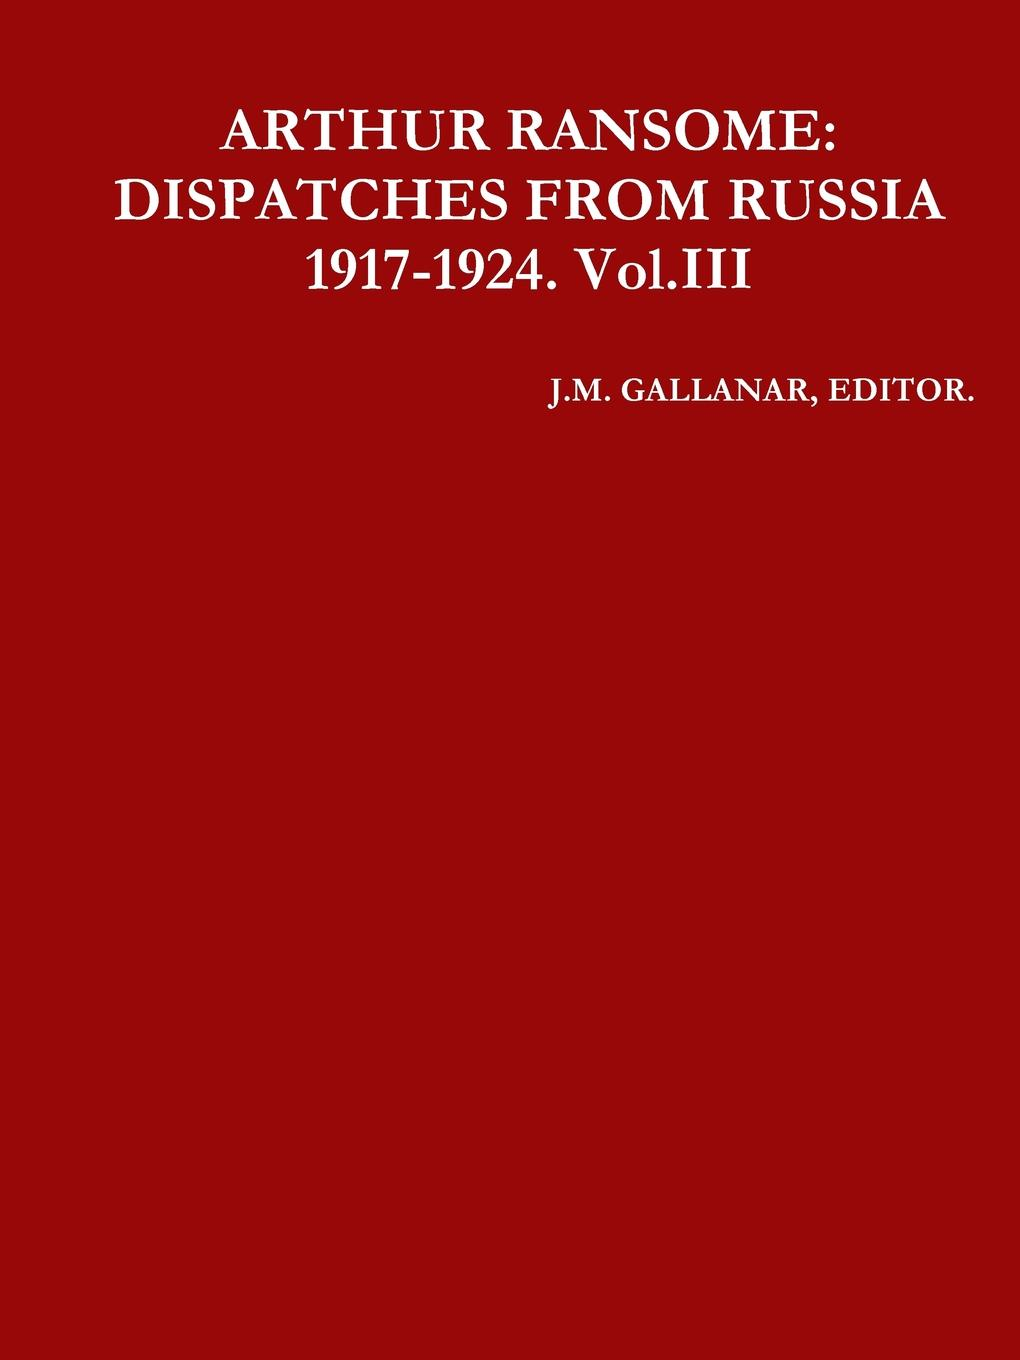 EDITOR. J.M. GALLANAR ARTHUR RANSOME. DISPATCHES FROM RUSSIA 1917-1924. Vol.III 1917 russia s red year